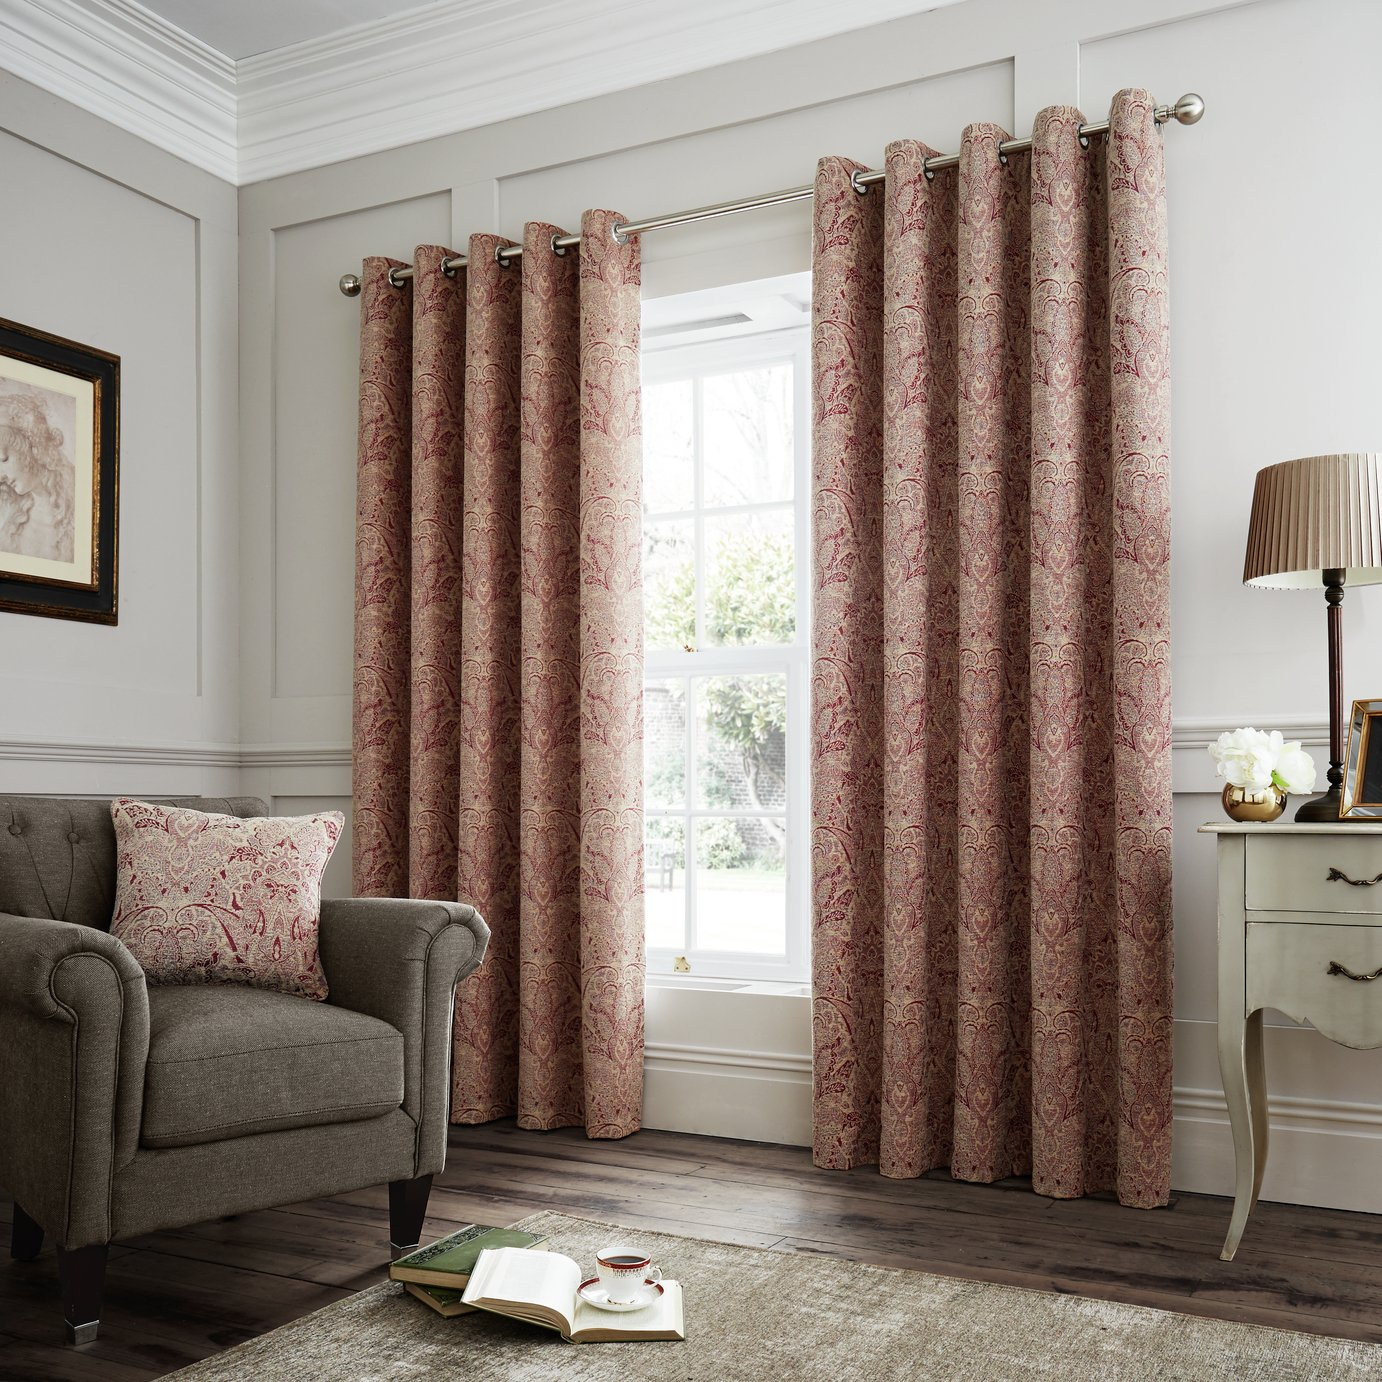 Curtina Whitcliffe Lined Eyelet Curtains - 229x183cm - Multi